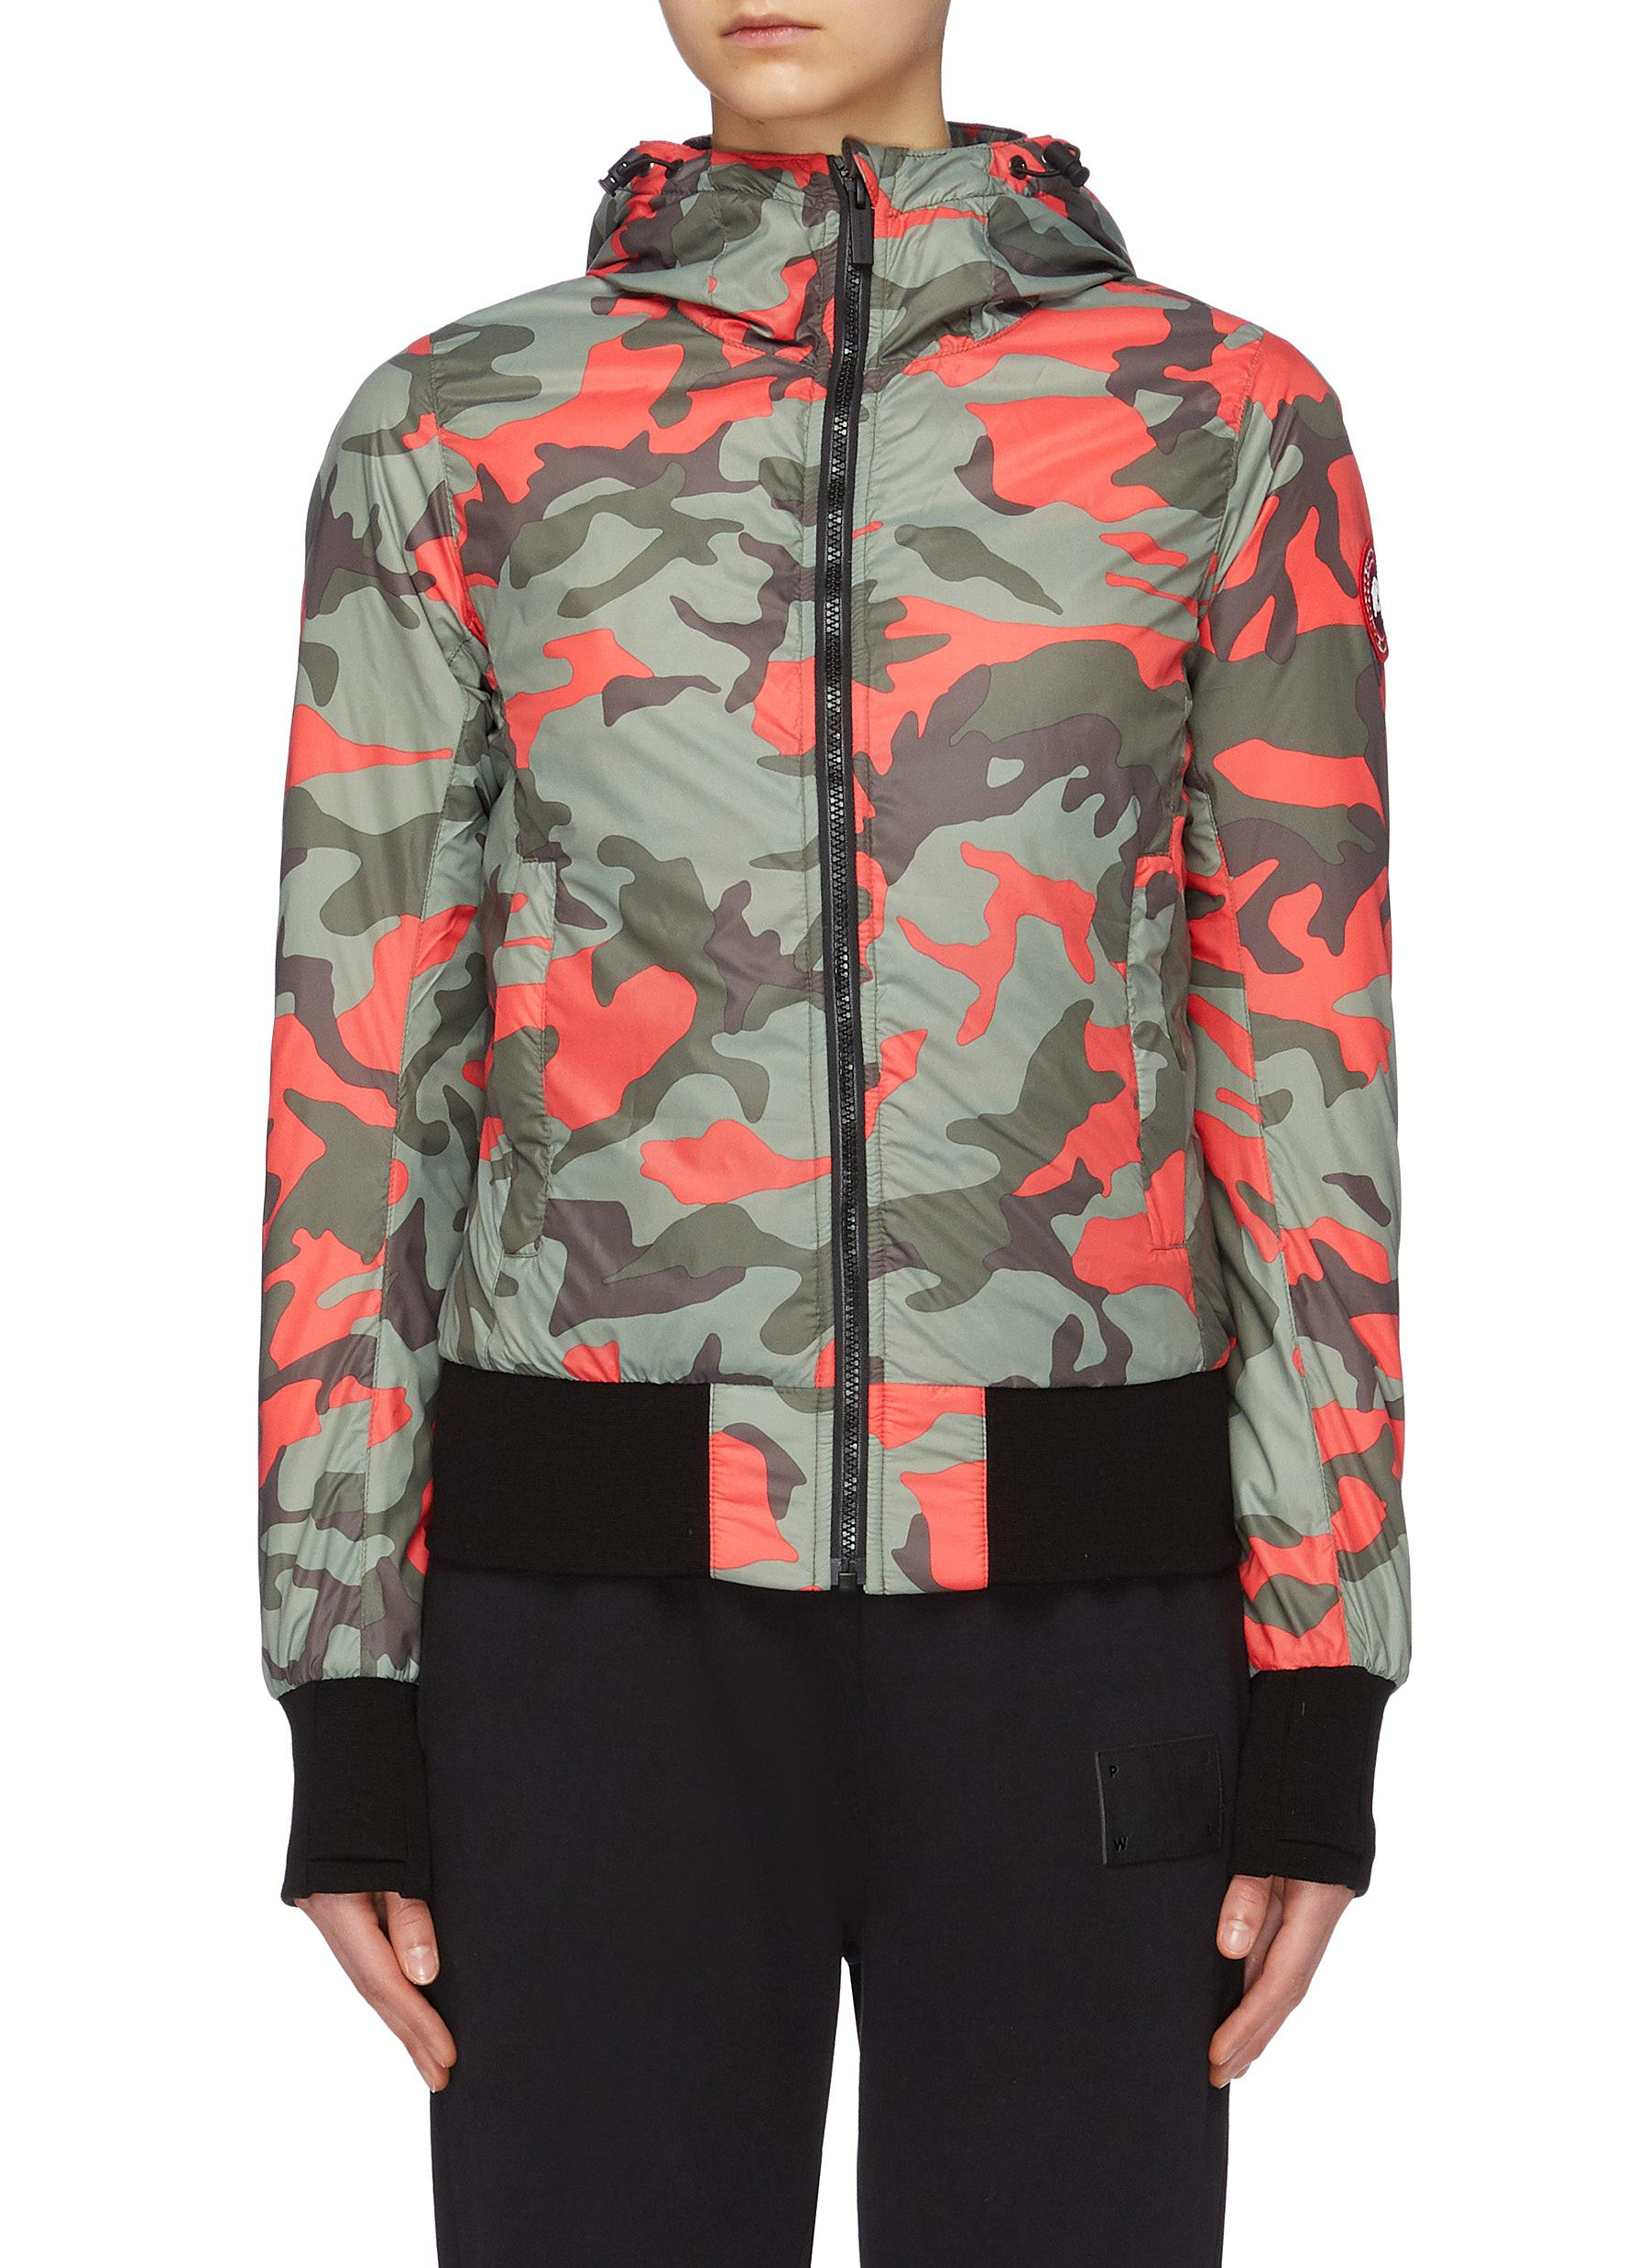 Buy Canada Goose Jackets 'Dore' camouflage print hooded down jacket